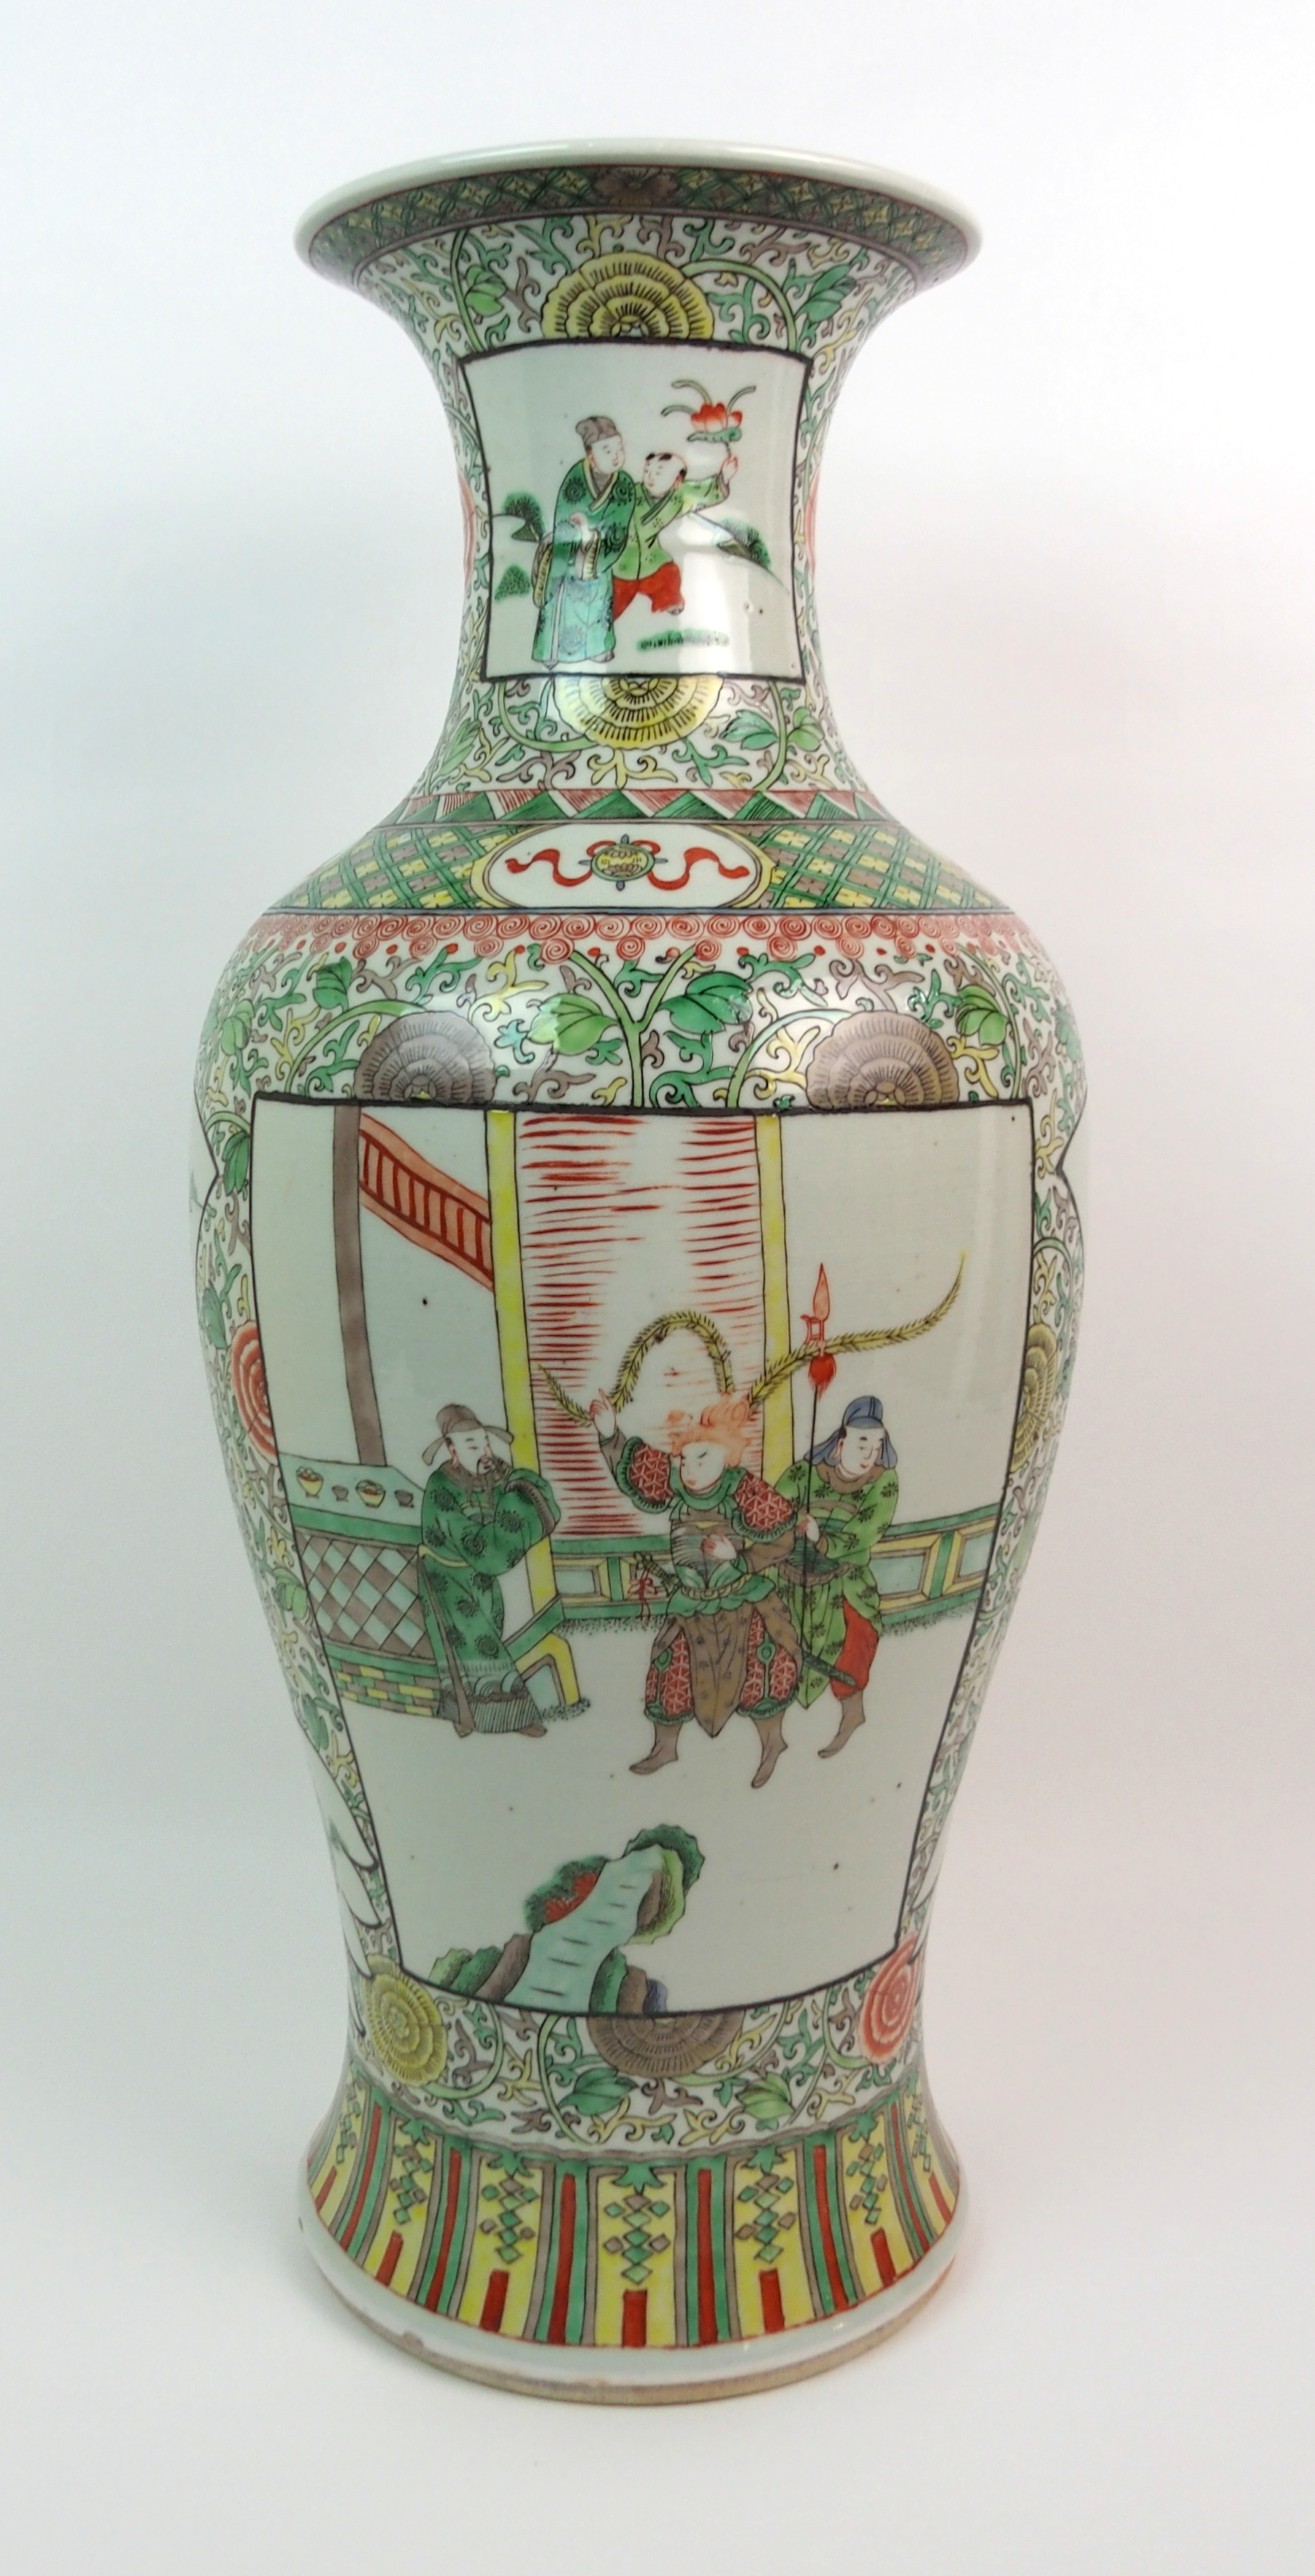 A CHINESE FAMILLE VERTE LARGE BALUSTER VASE painted with panels of figures surrounded by flowers and - Image 2 of 10